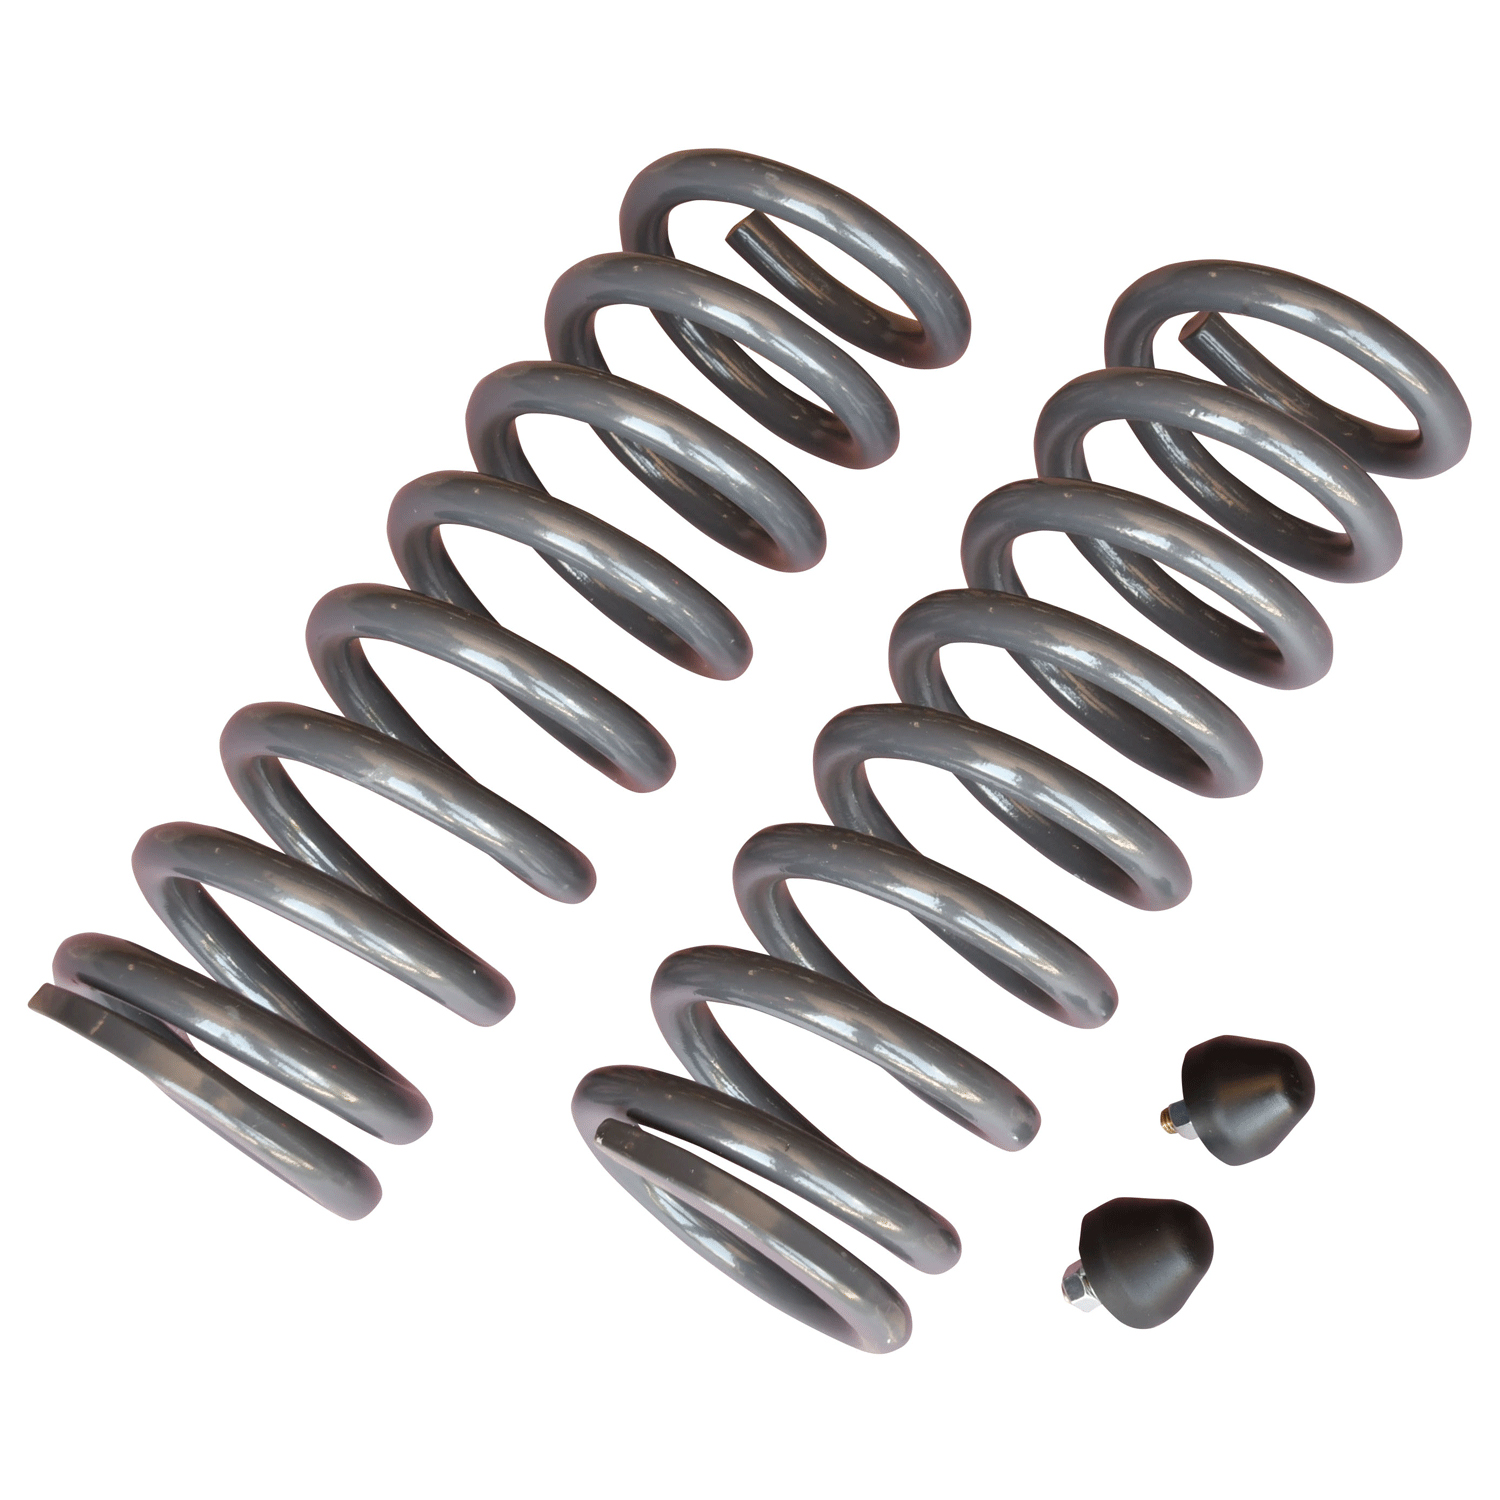 1964-1966 GM A-Body SB Front Coil Springs 2 in. Lowering springs